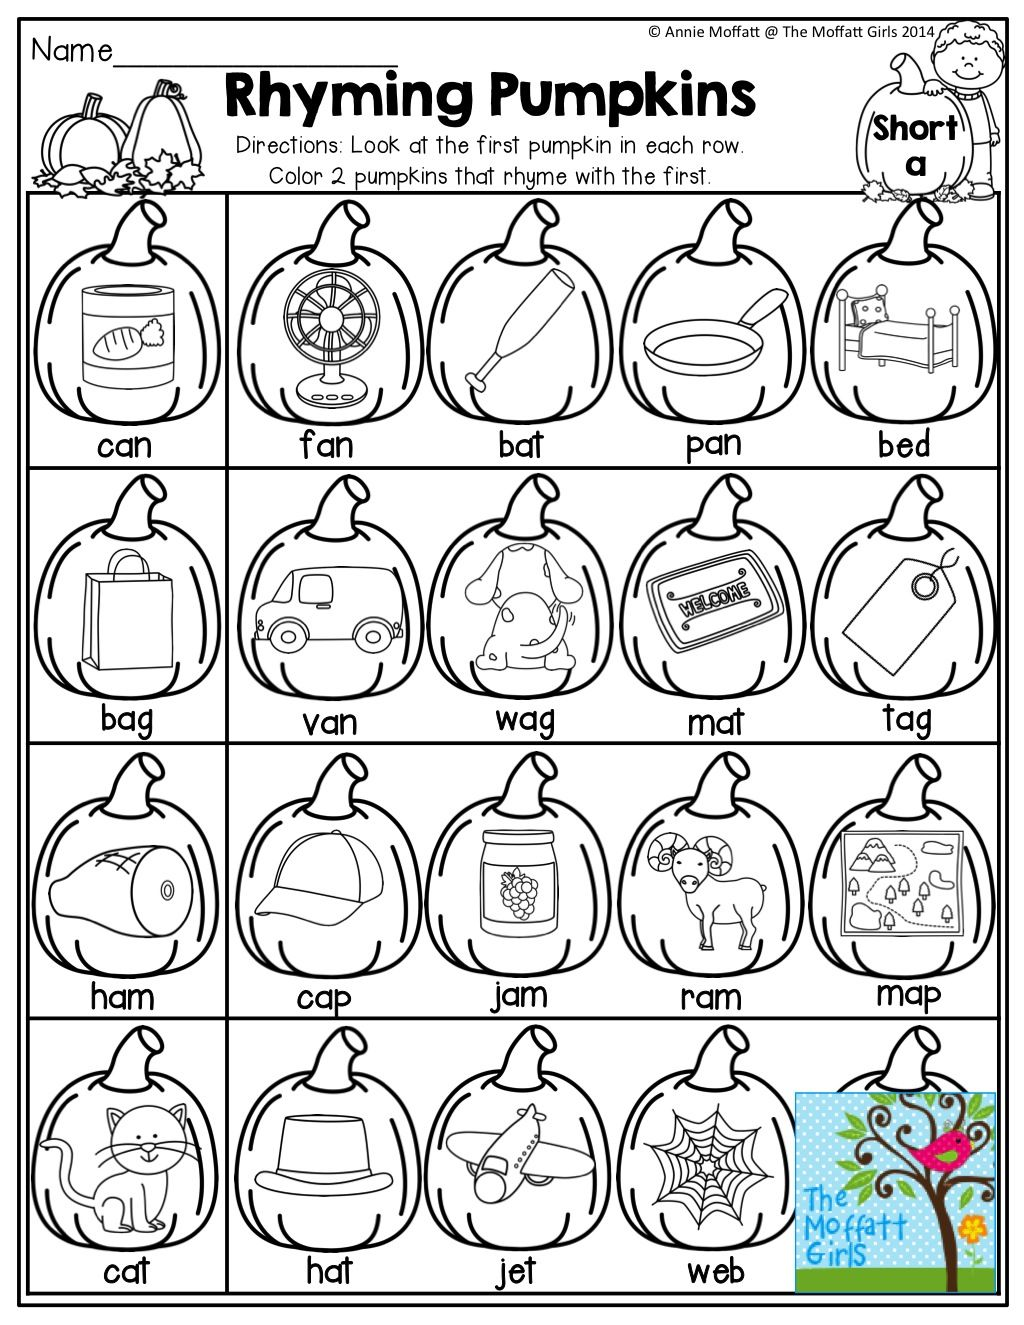 Rhyming Pumpkins Color The Pumpkins That Rhyme And Tons Of Other Fun Printables